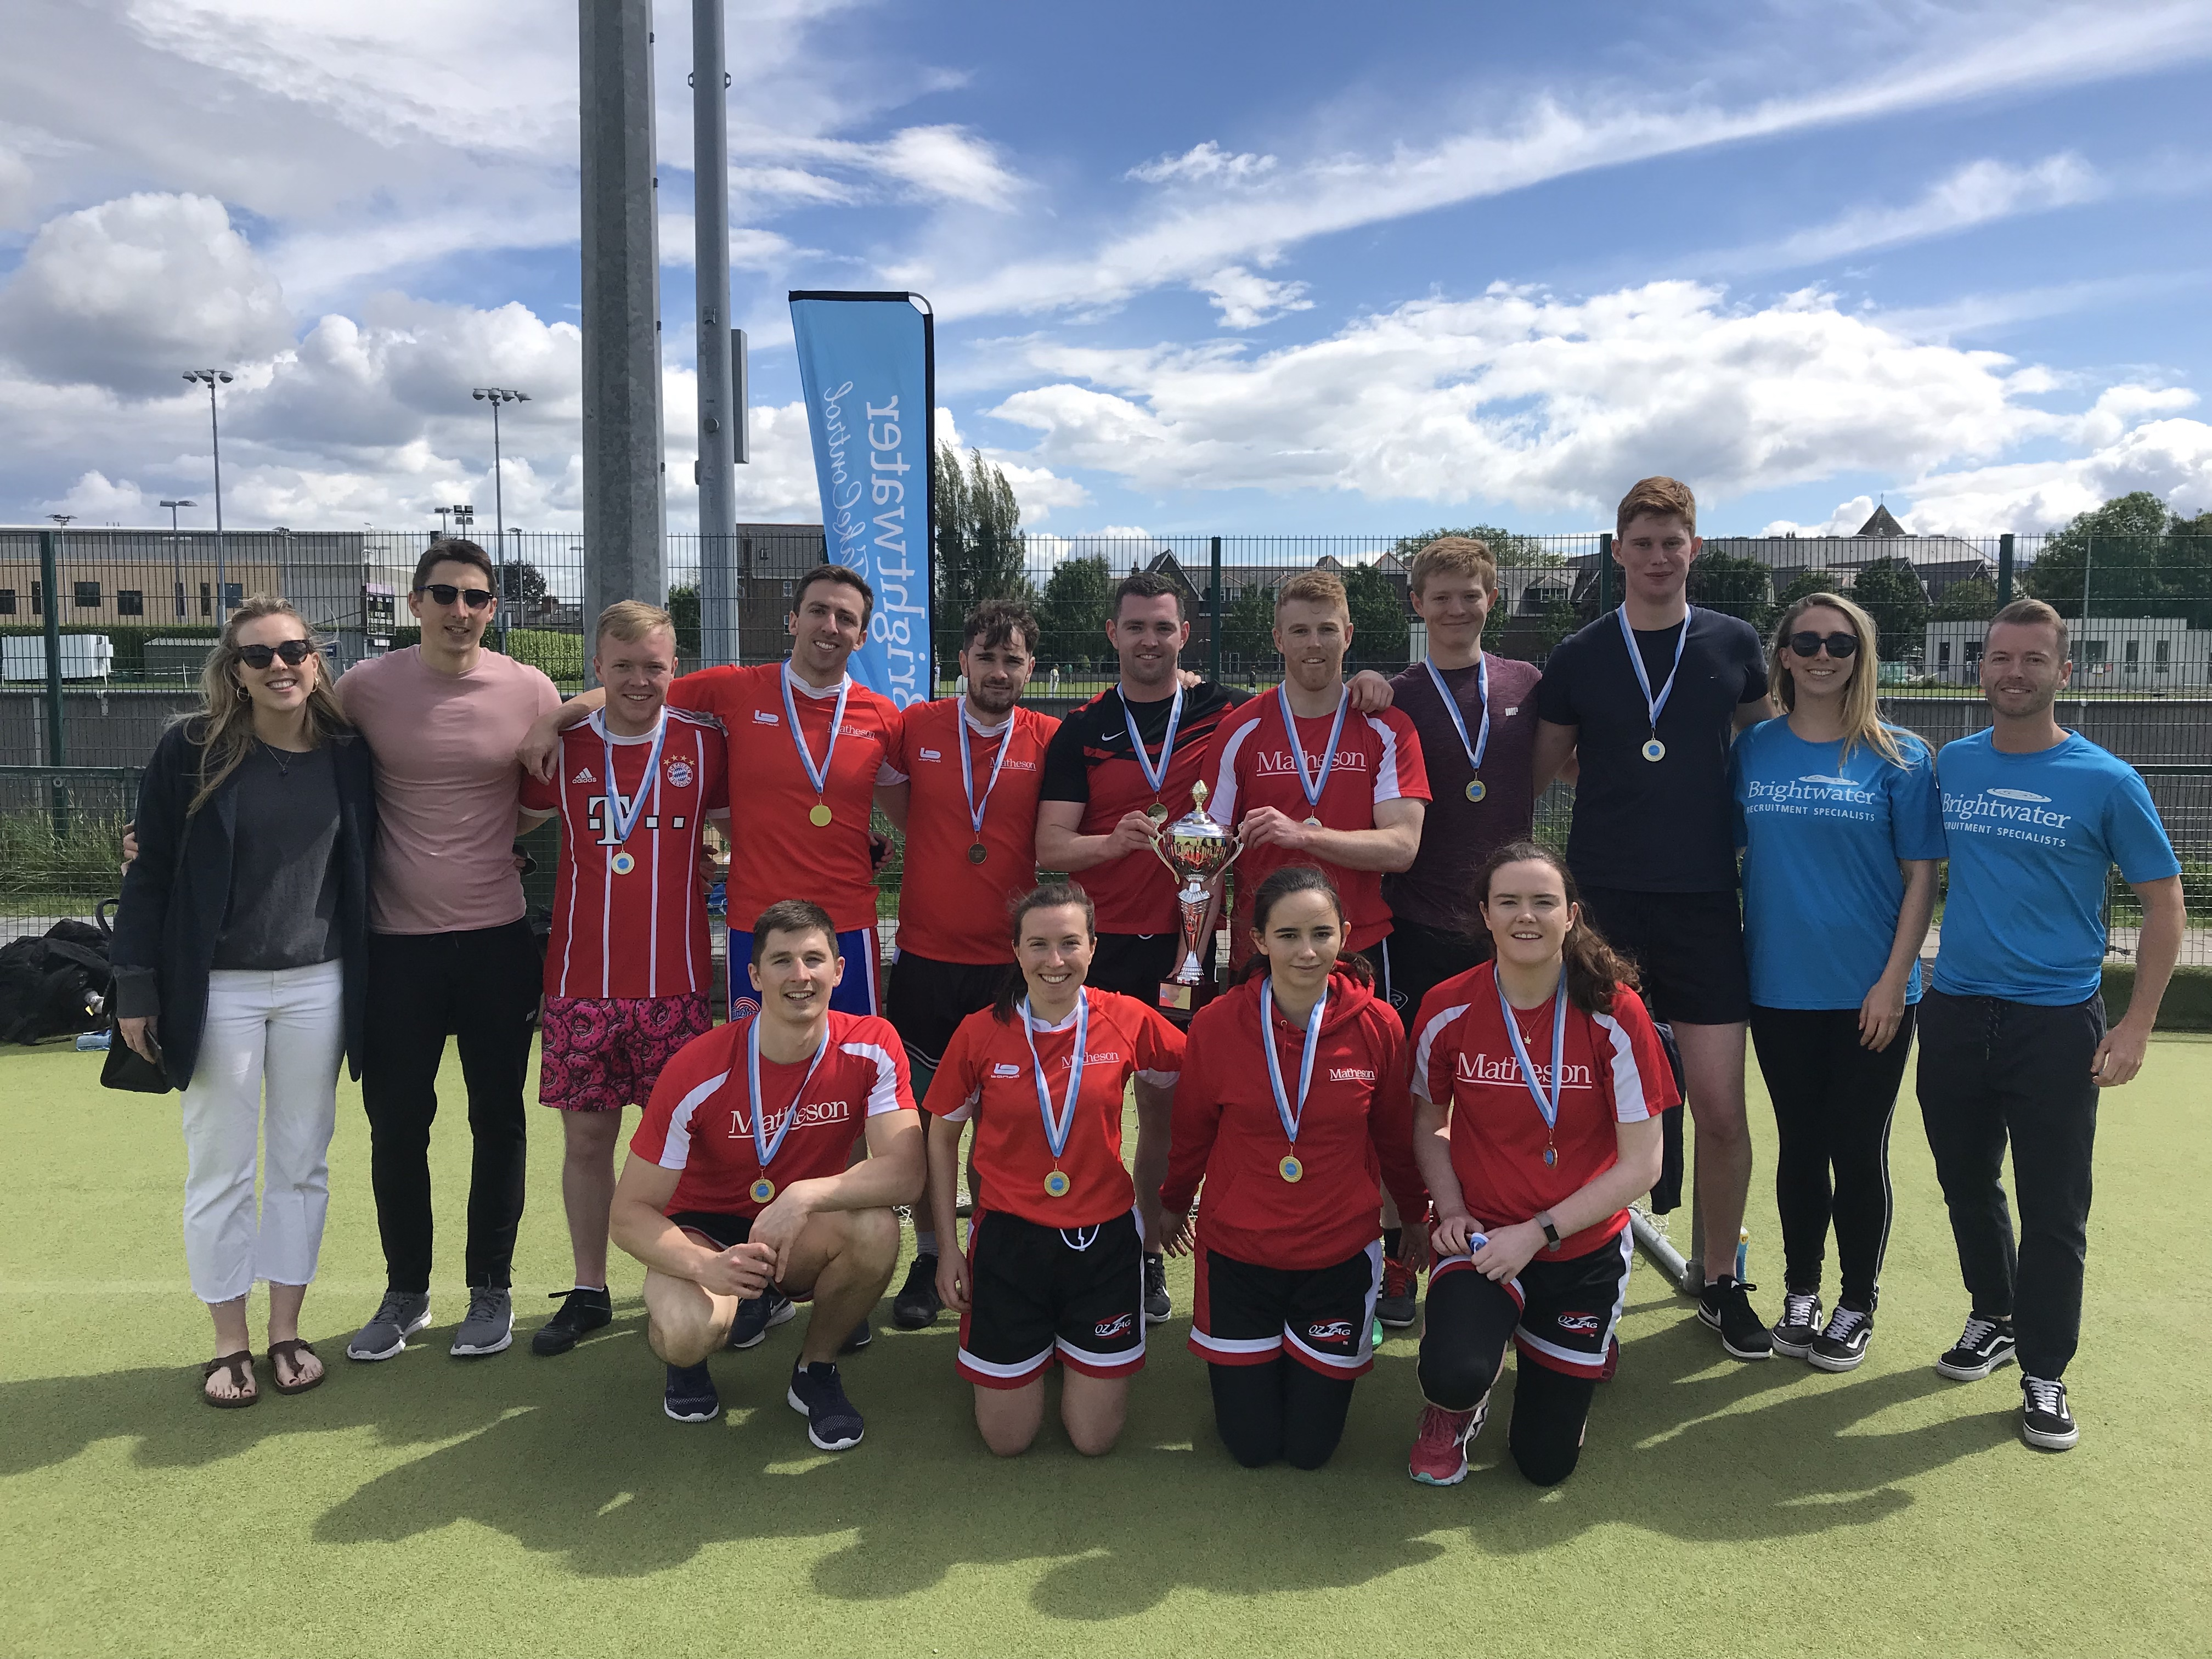 Winners of the SYS Tag Rugby 2019 Matheson Law